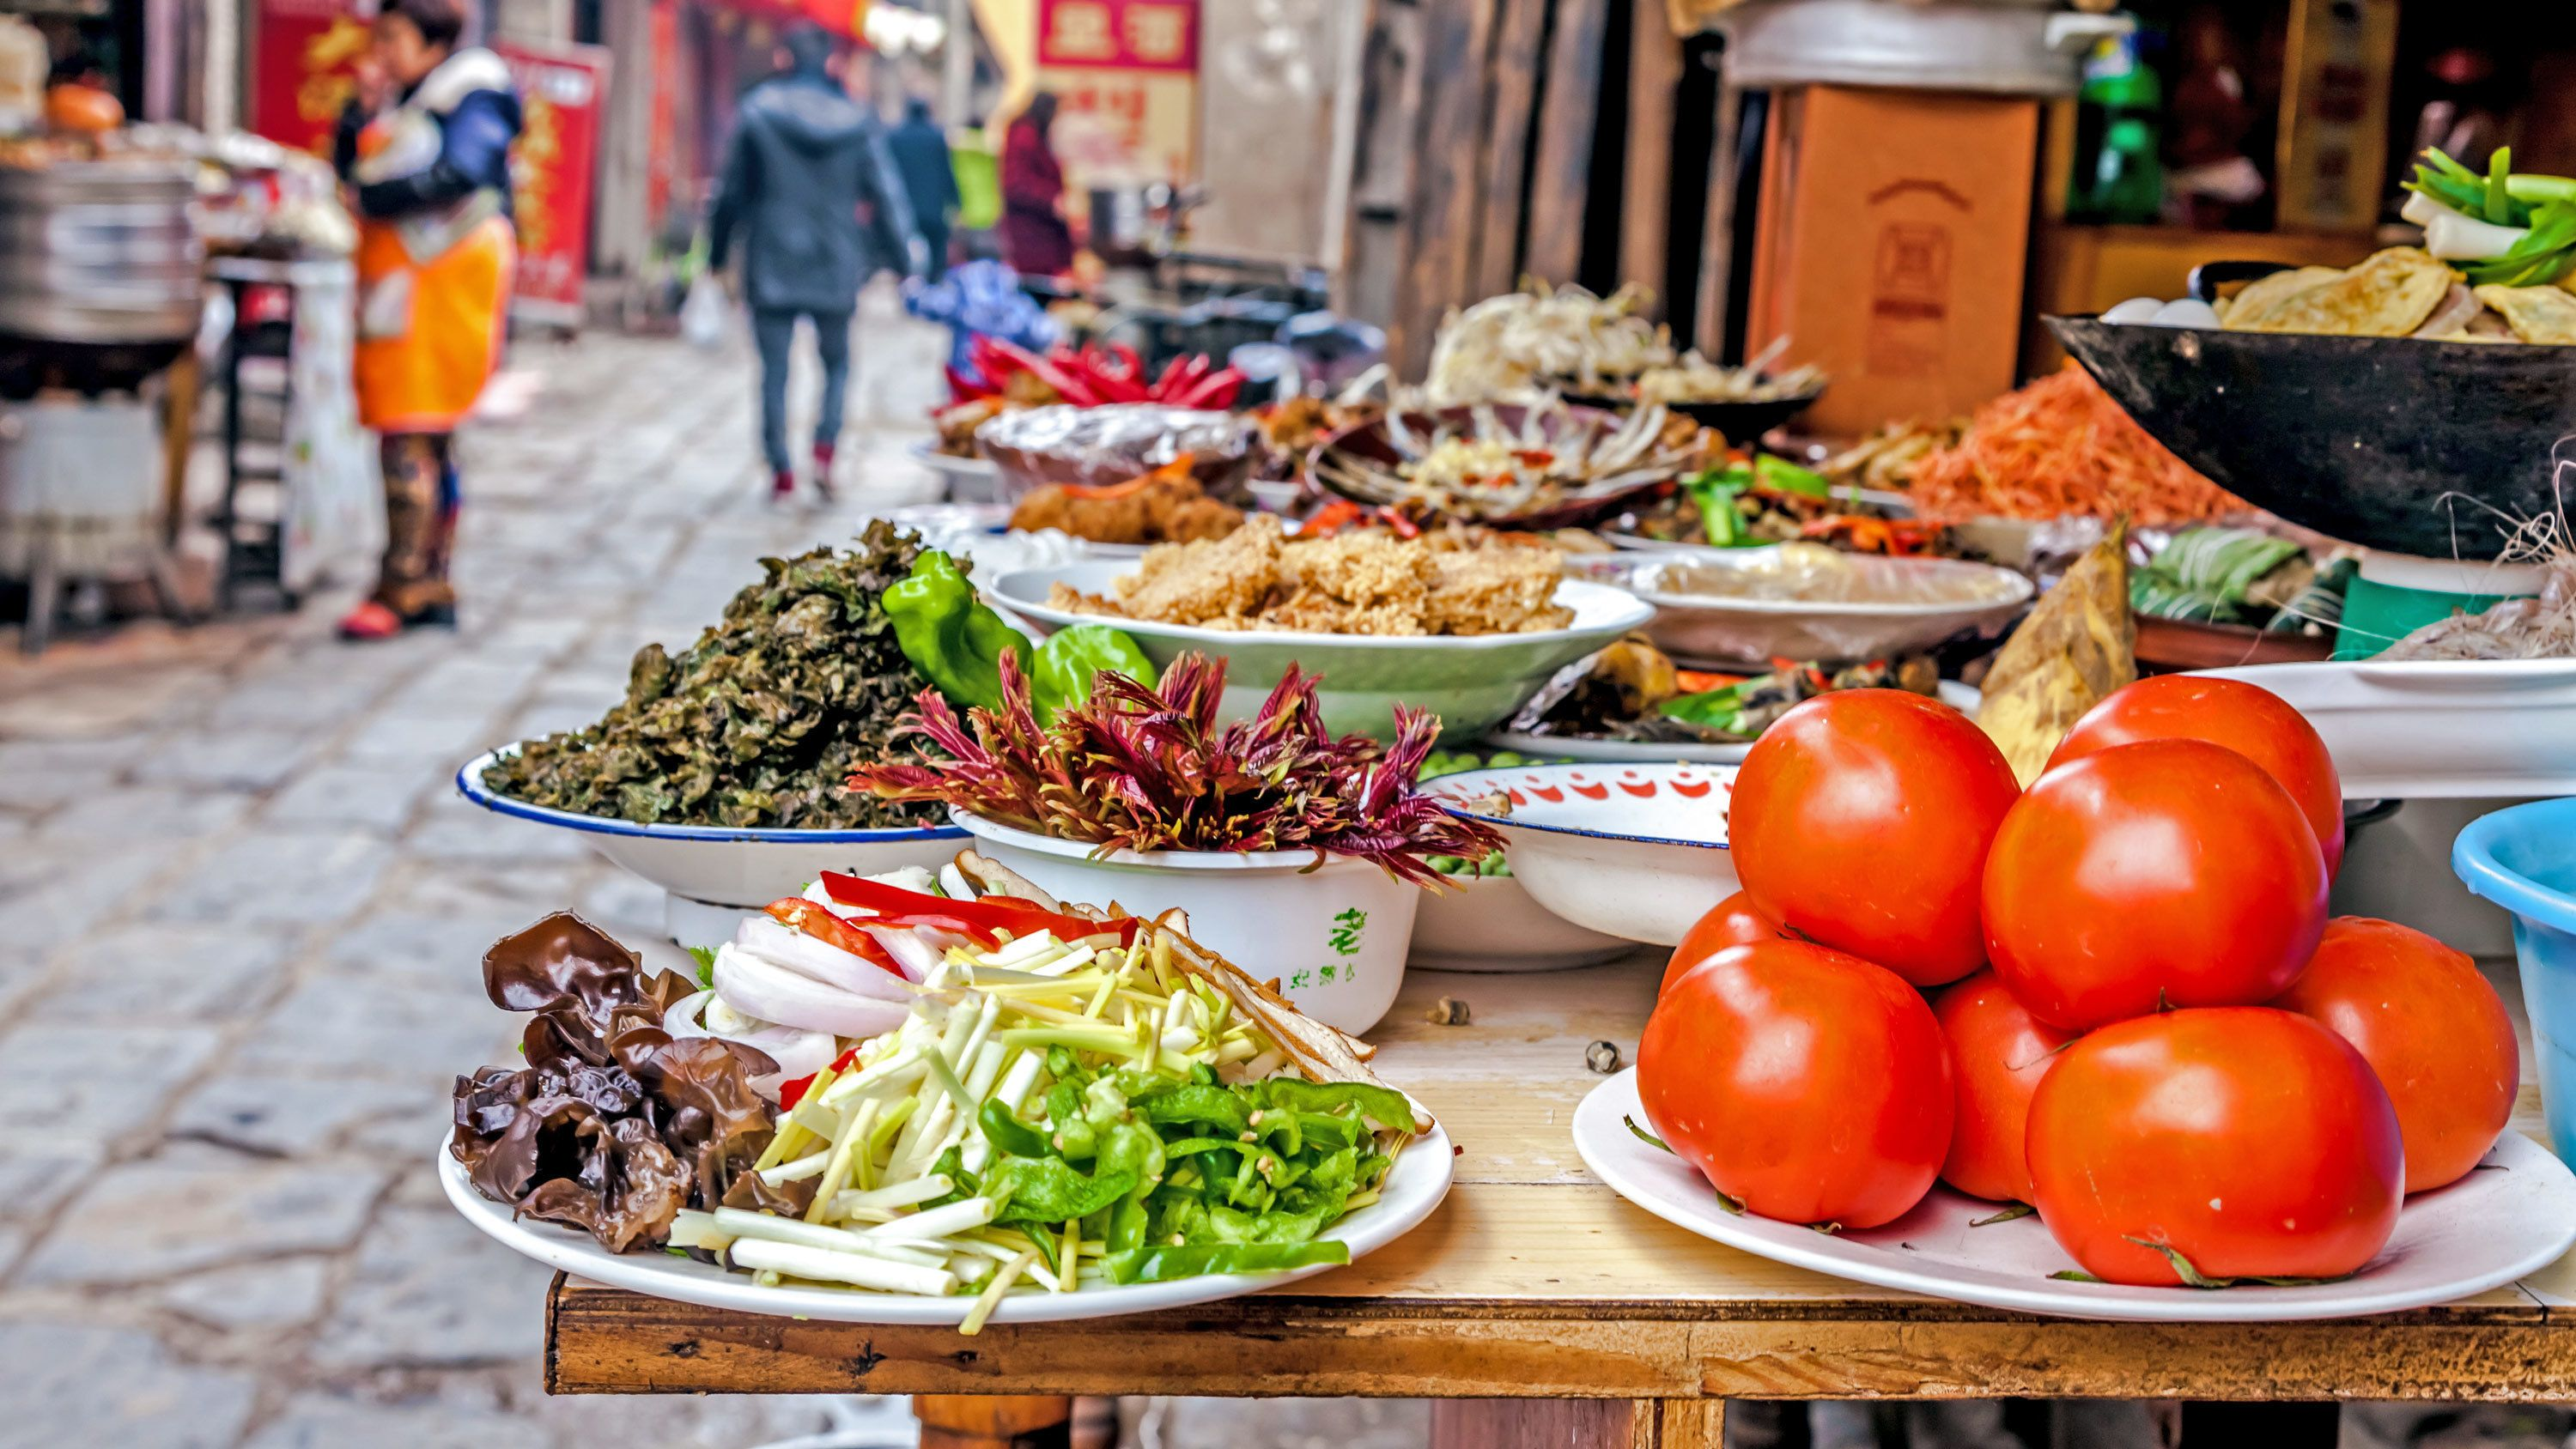 A table of produce on plates in a Beijing alley